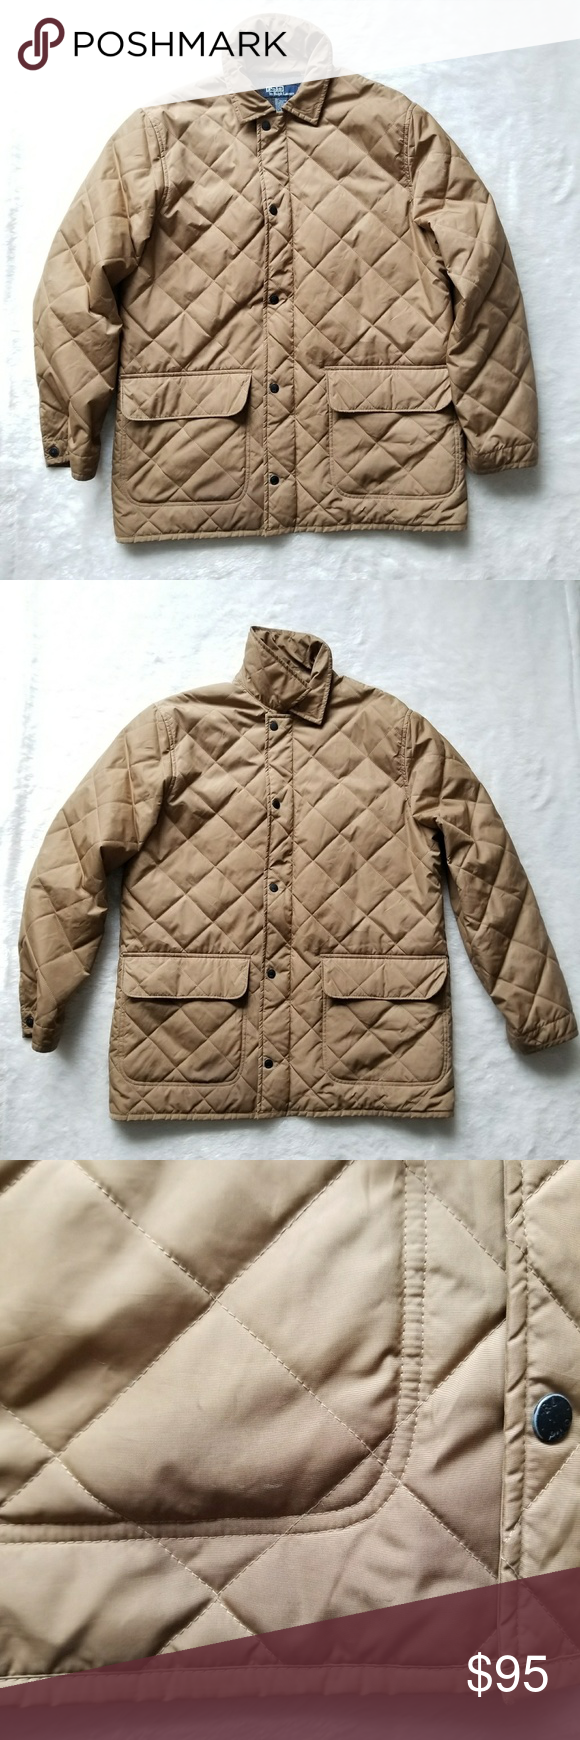 Wool Lined Quilted Polo Jacket Polo Jackets Clothes Design Quilted Jacket [ 1740 x 580 Pixel ]